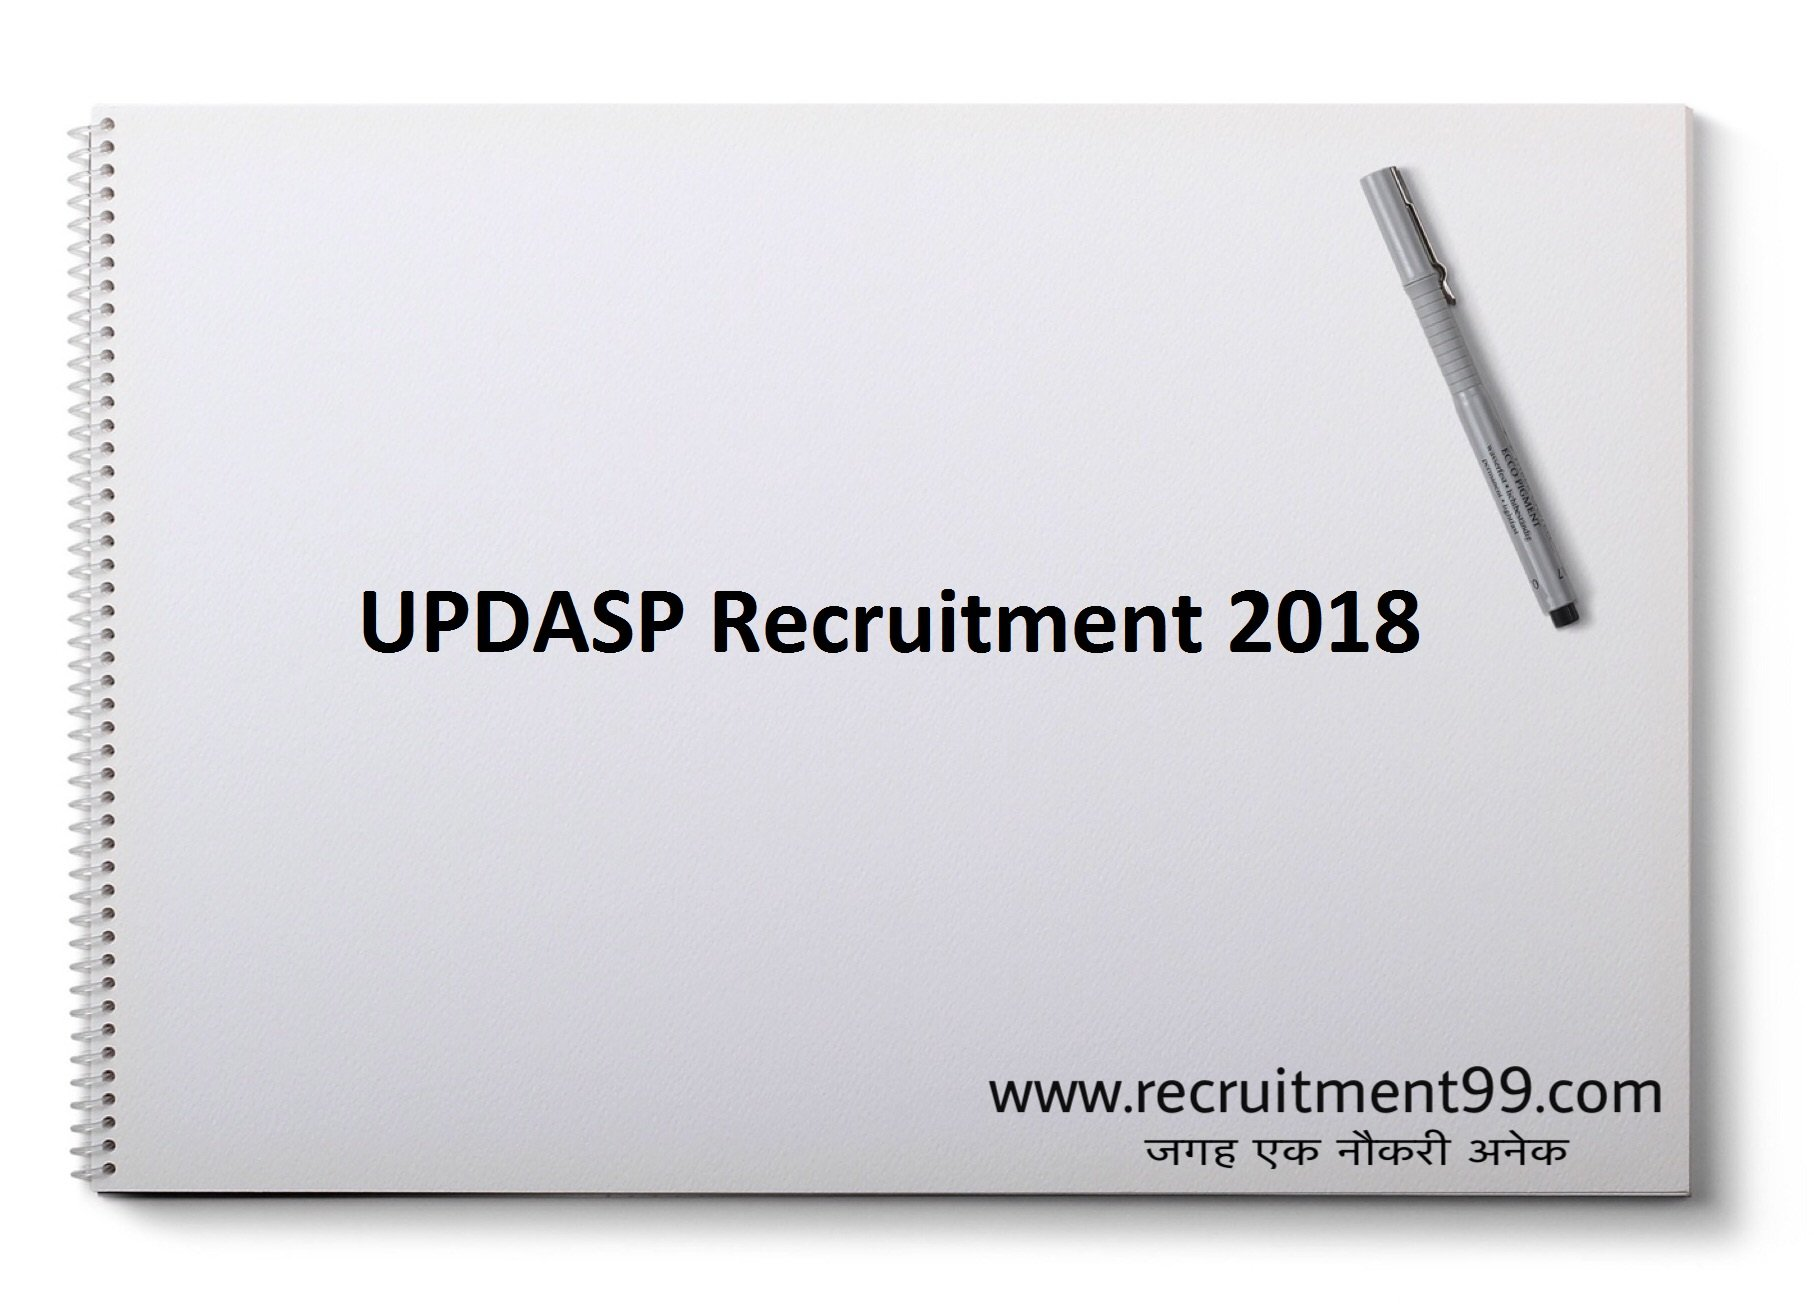 UPDASP AAO DPC Accountant Auditor Recruitment Admit Card & Result 2018